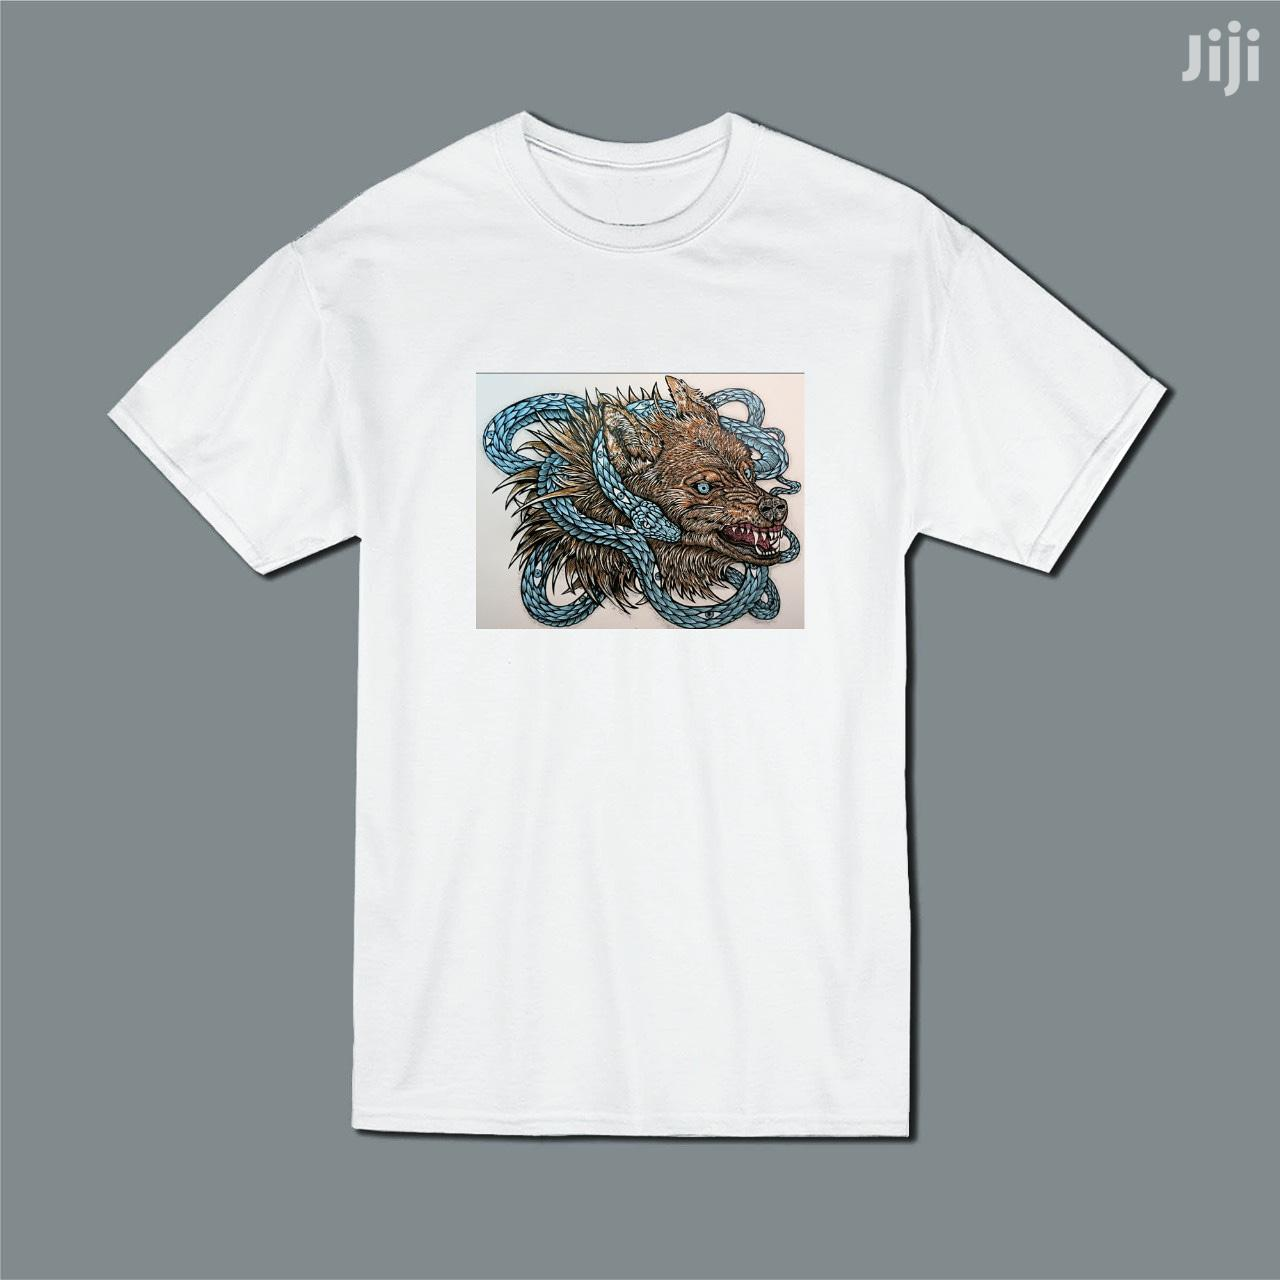 Archive: High Quality Printed White T Shirts